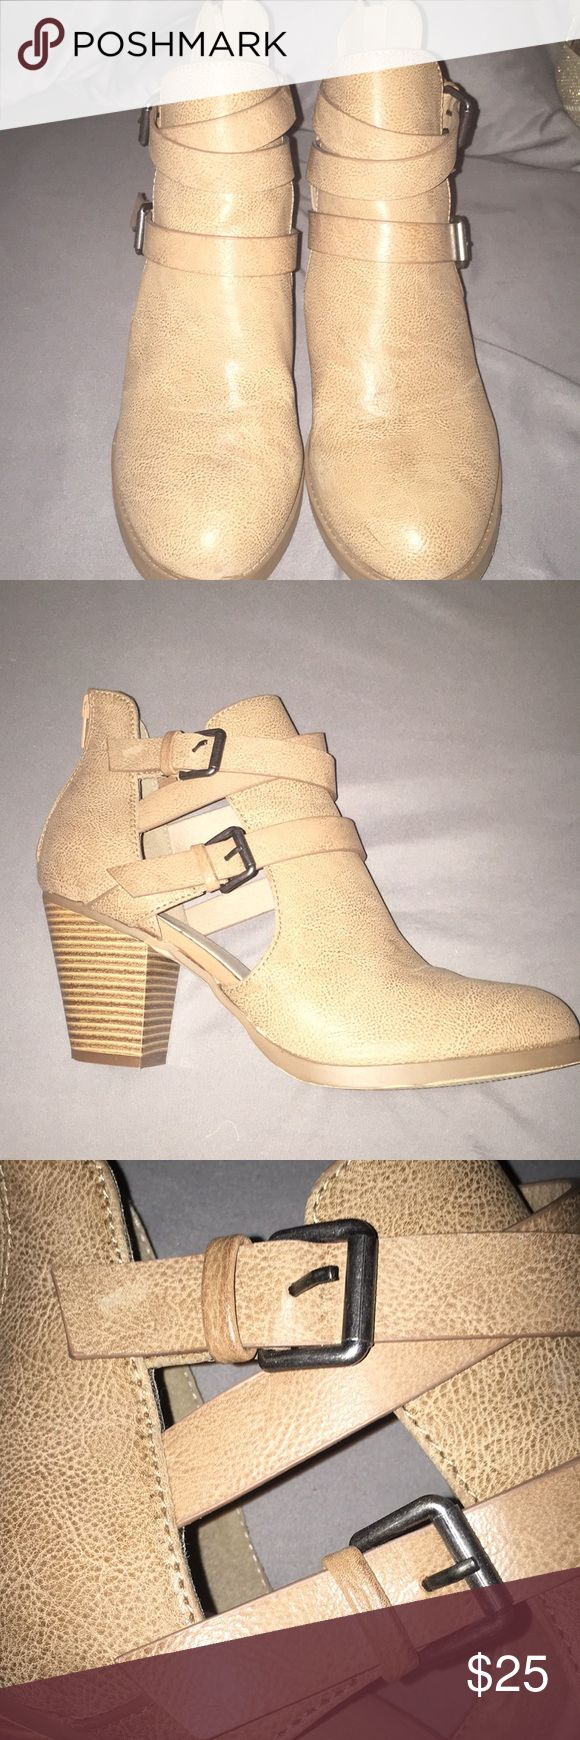 Shoe Dazzle Booties Tan booties with side cut outs and belted accents Shoe Dazzle Shoes Ankle Boots & Booties